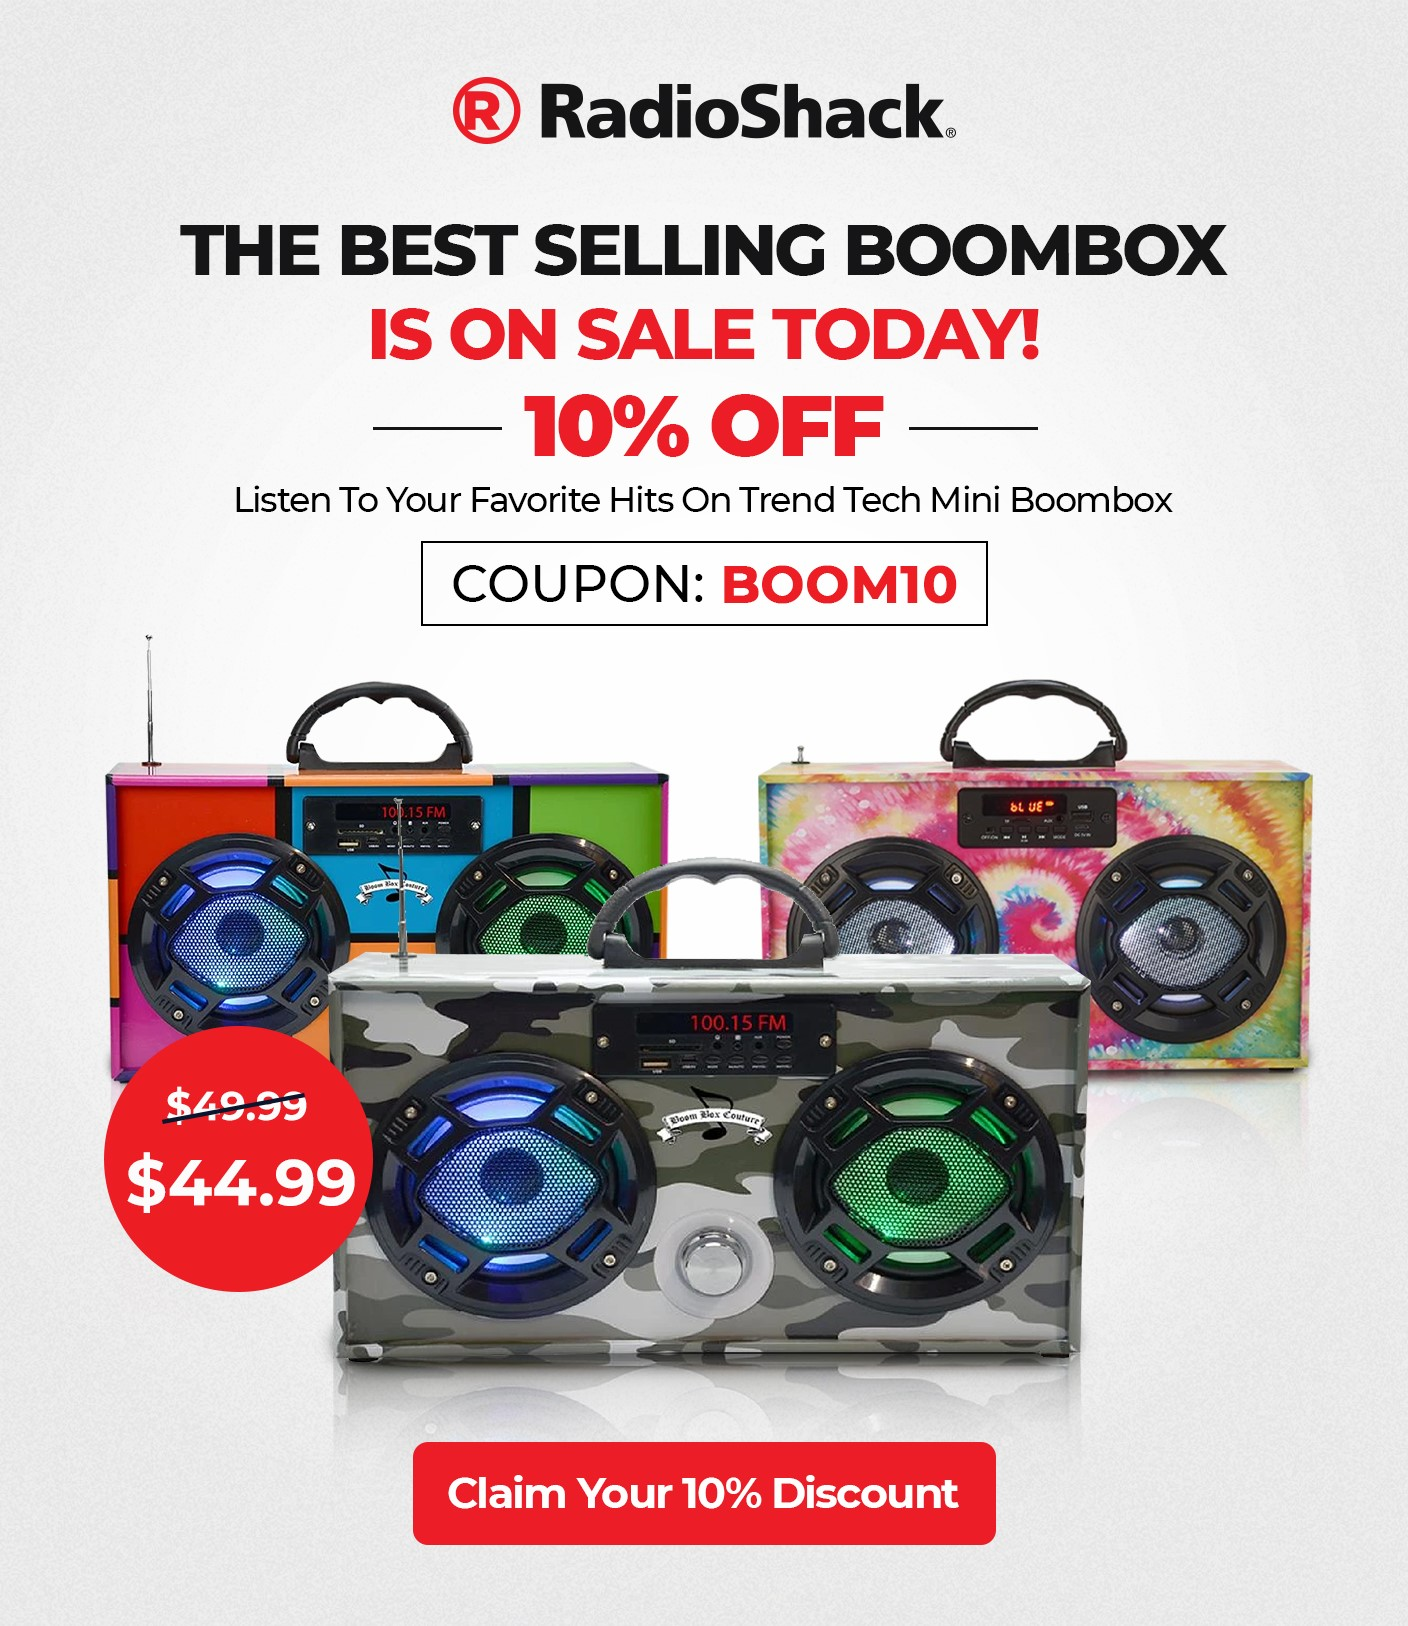 The best selling boombox